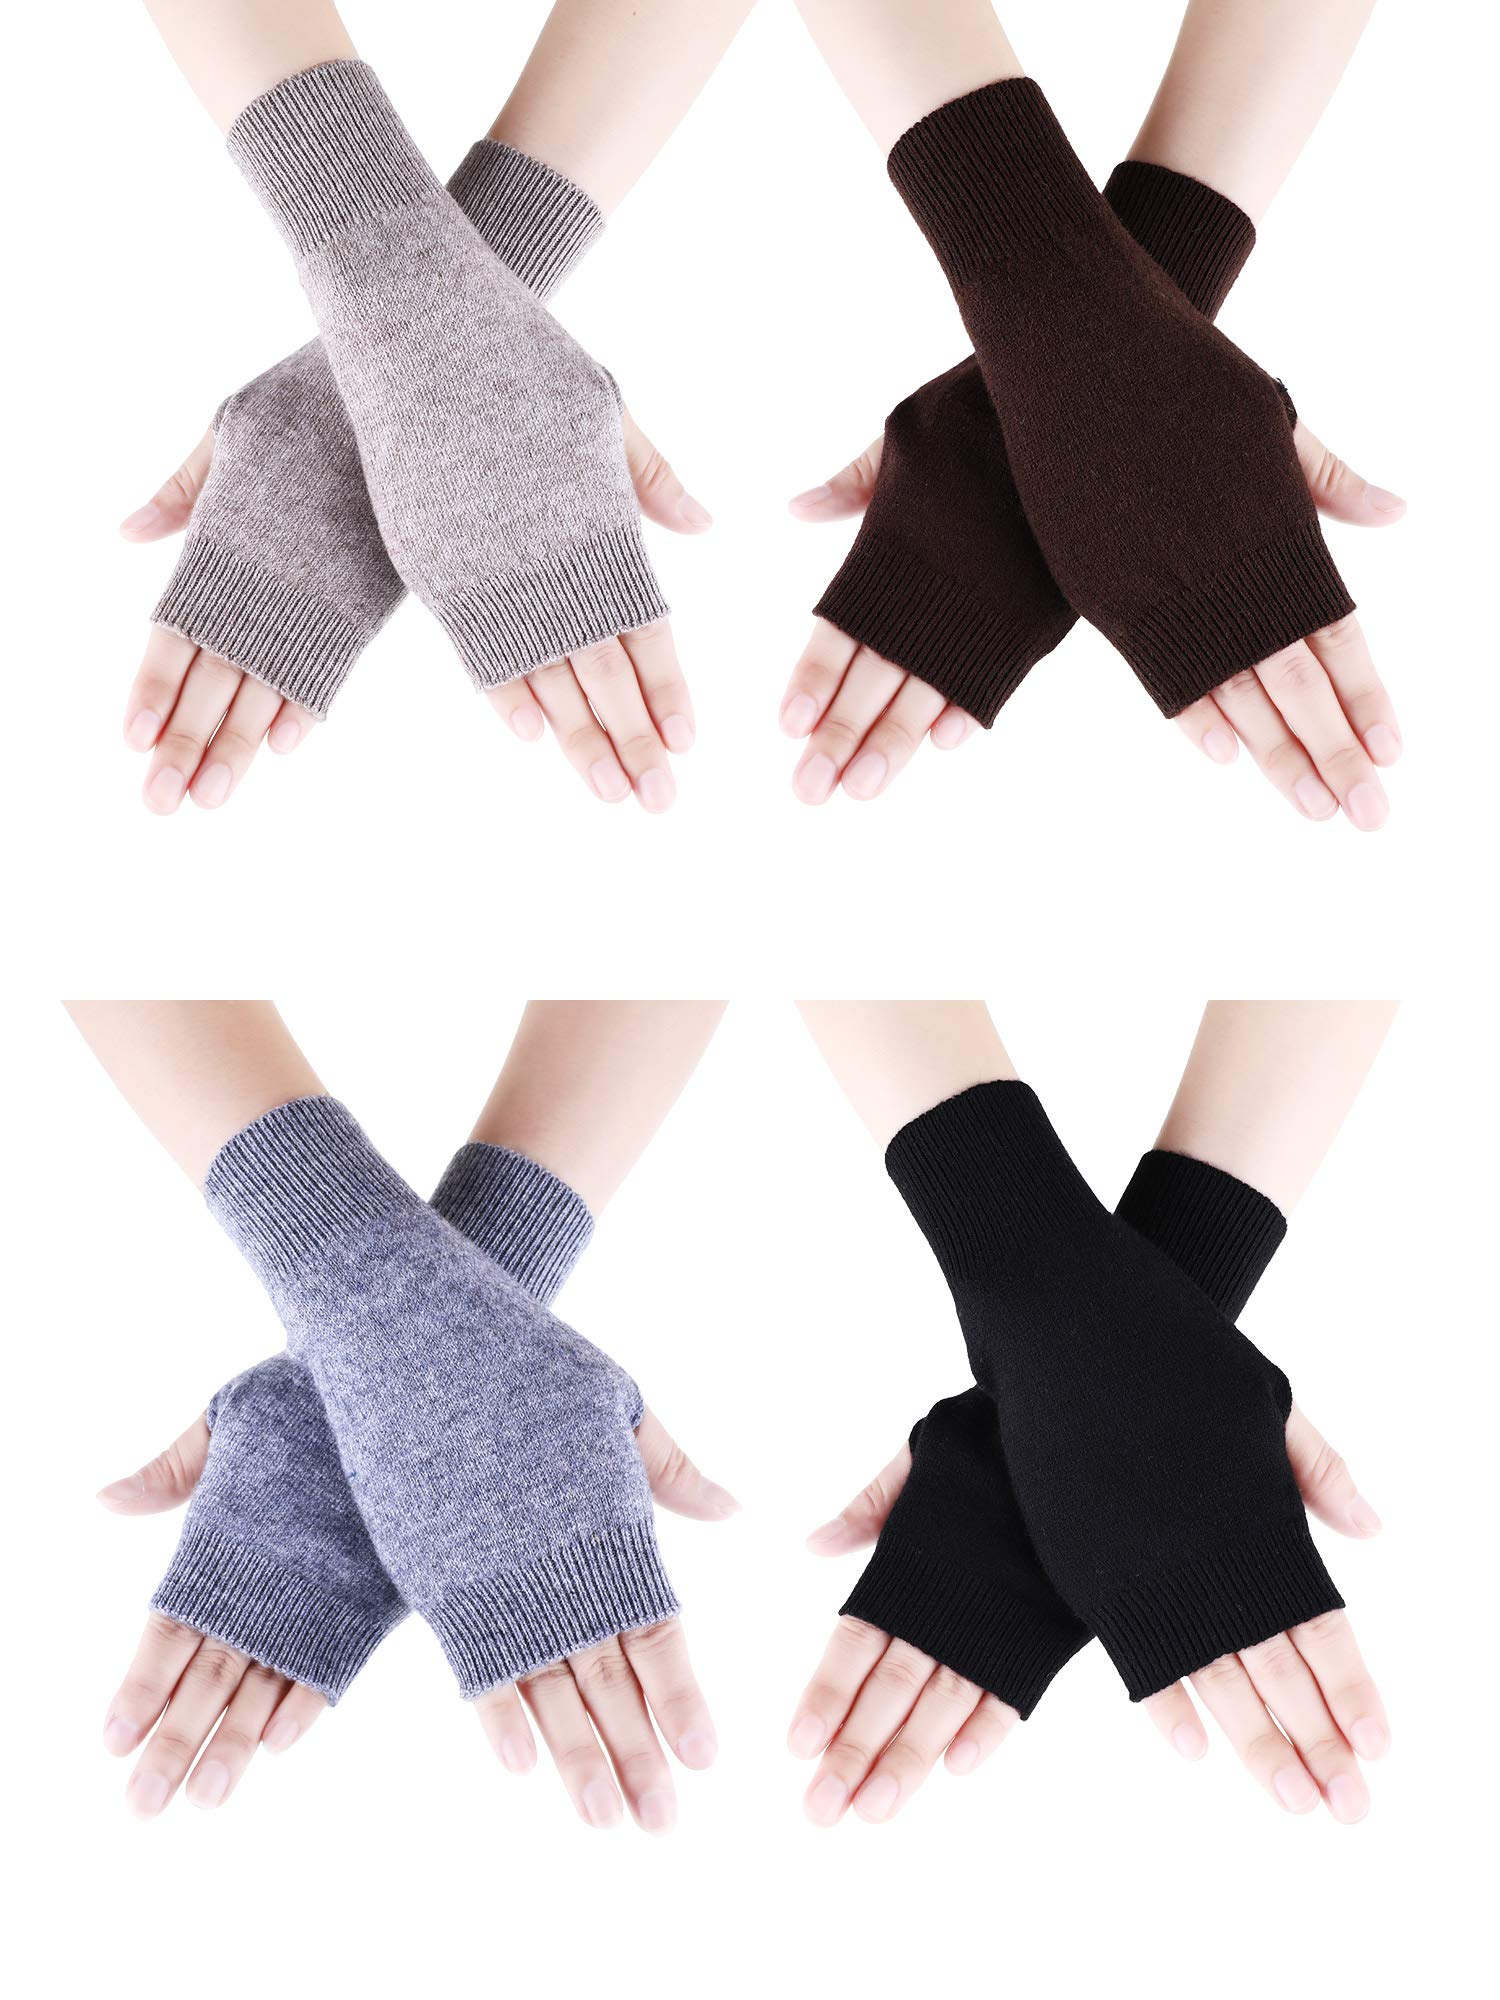 Tatuo 4 Pairs Cashmere Feel Fingerless Gloves with Thumb Hole Warm Gloves for Women and Men (Color Set 1) by Tatuo